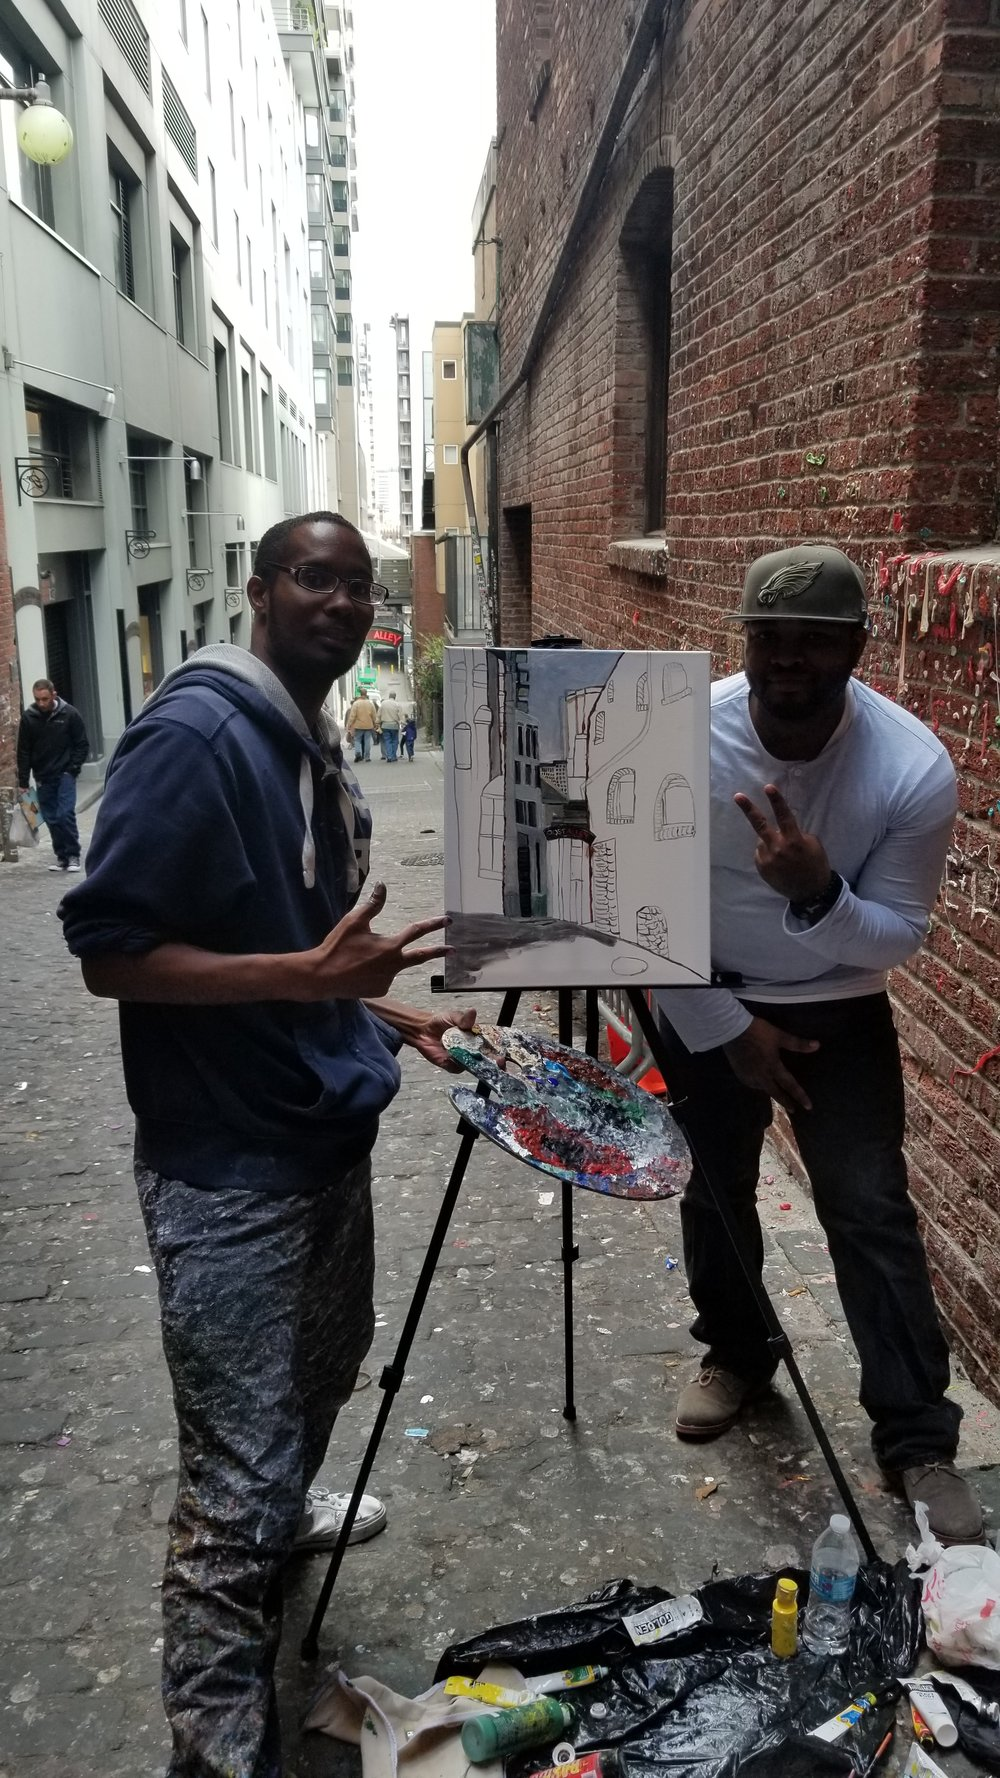 Me and my older brother taking a pose with my new artwork.